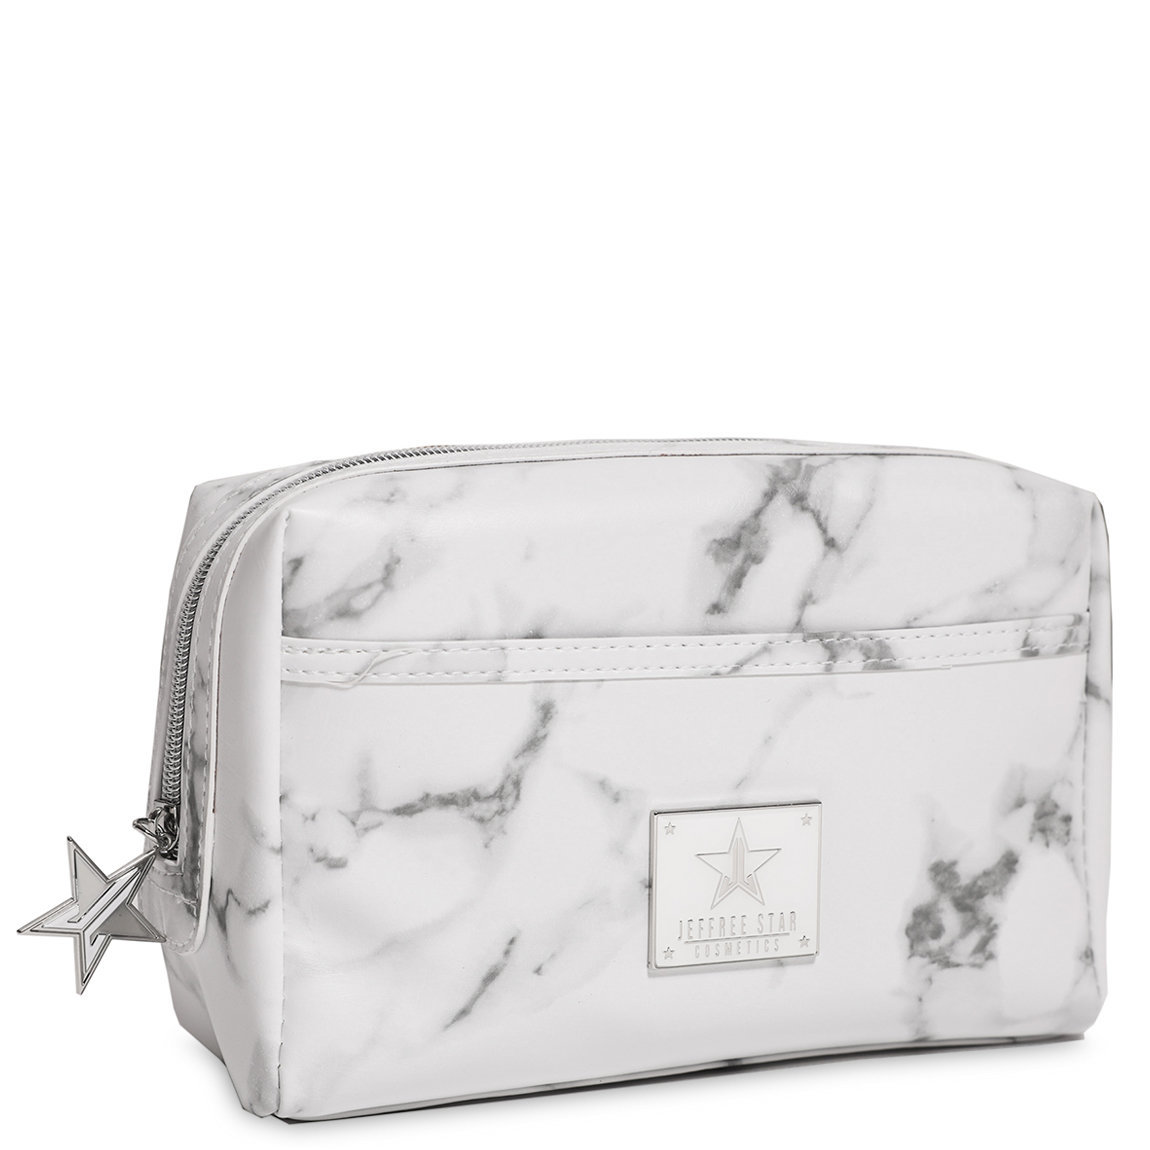 Jeffree Star Cosmetics Makeup Bag White Marble alternative view 1 - product swatch.